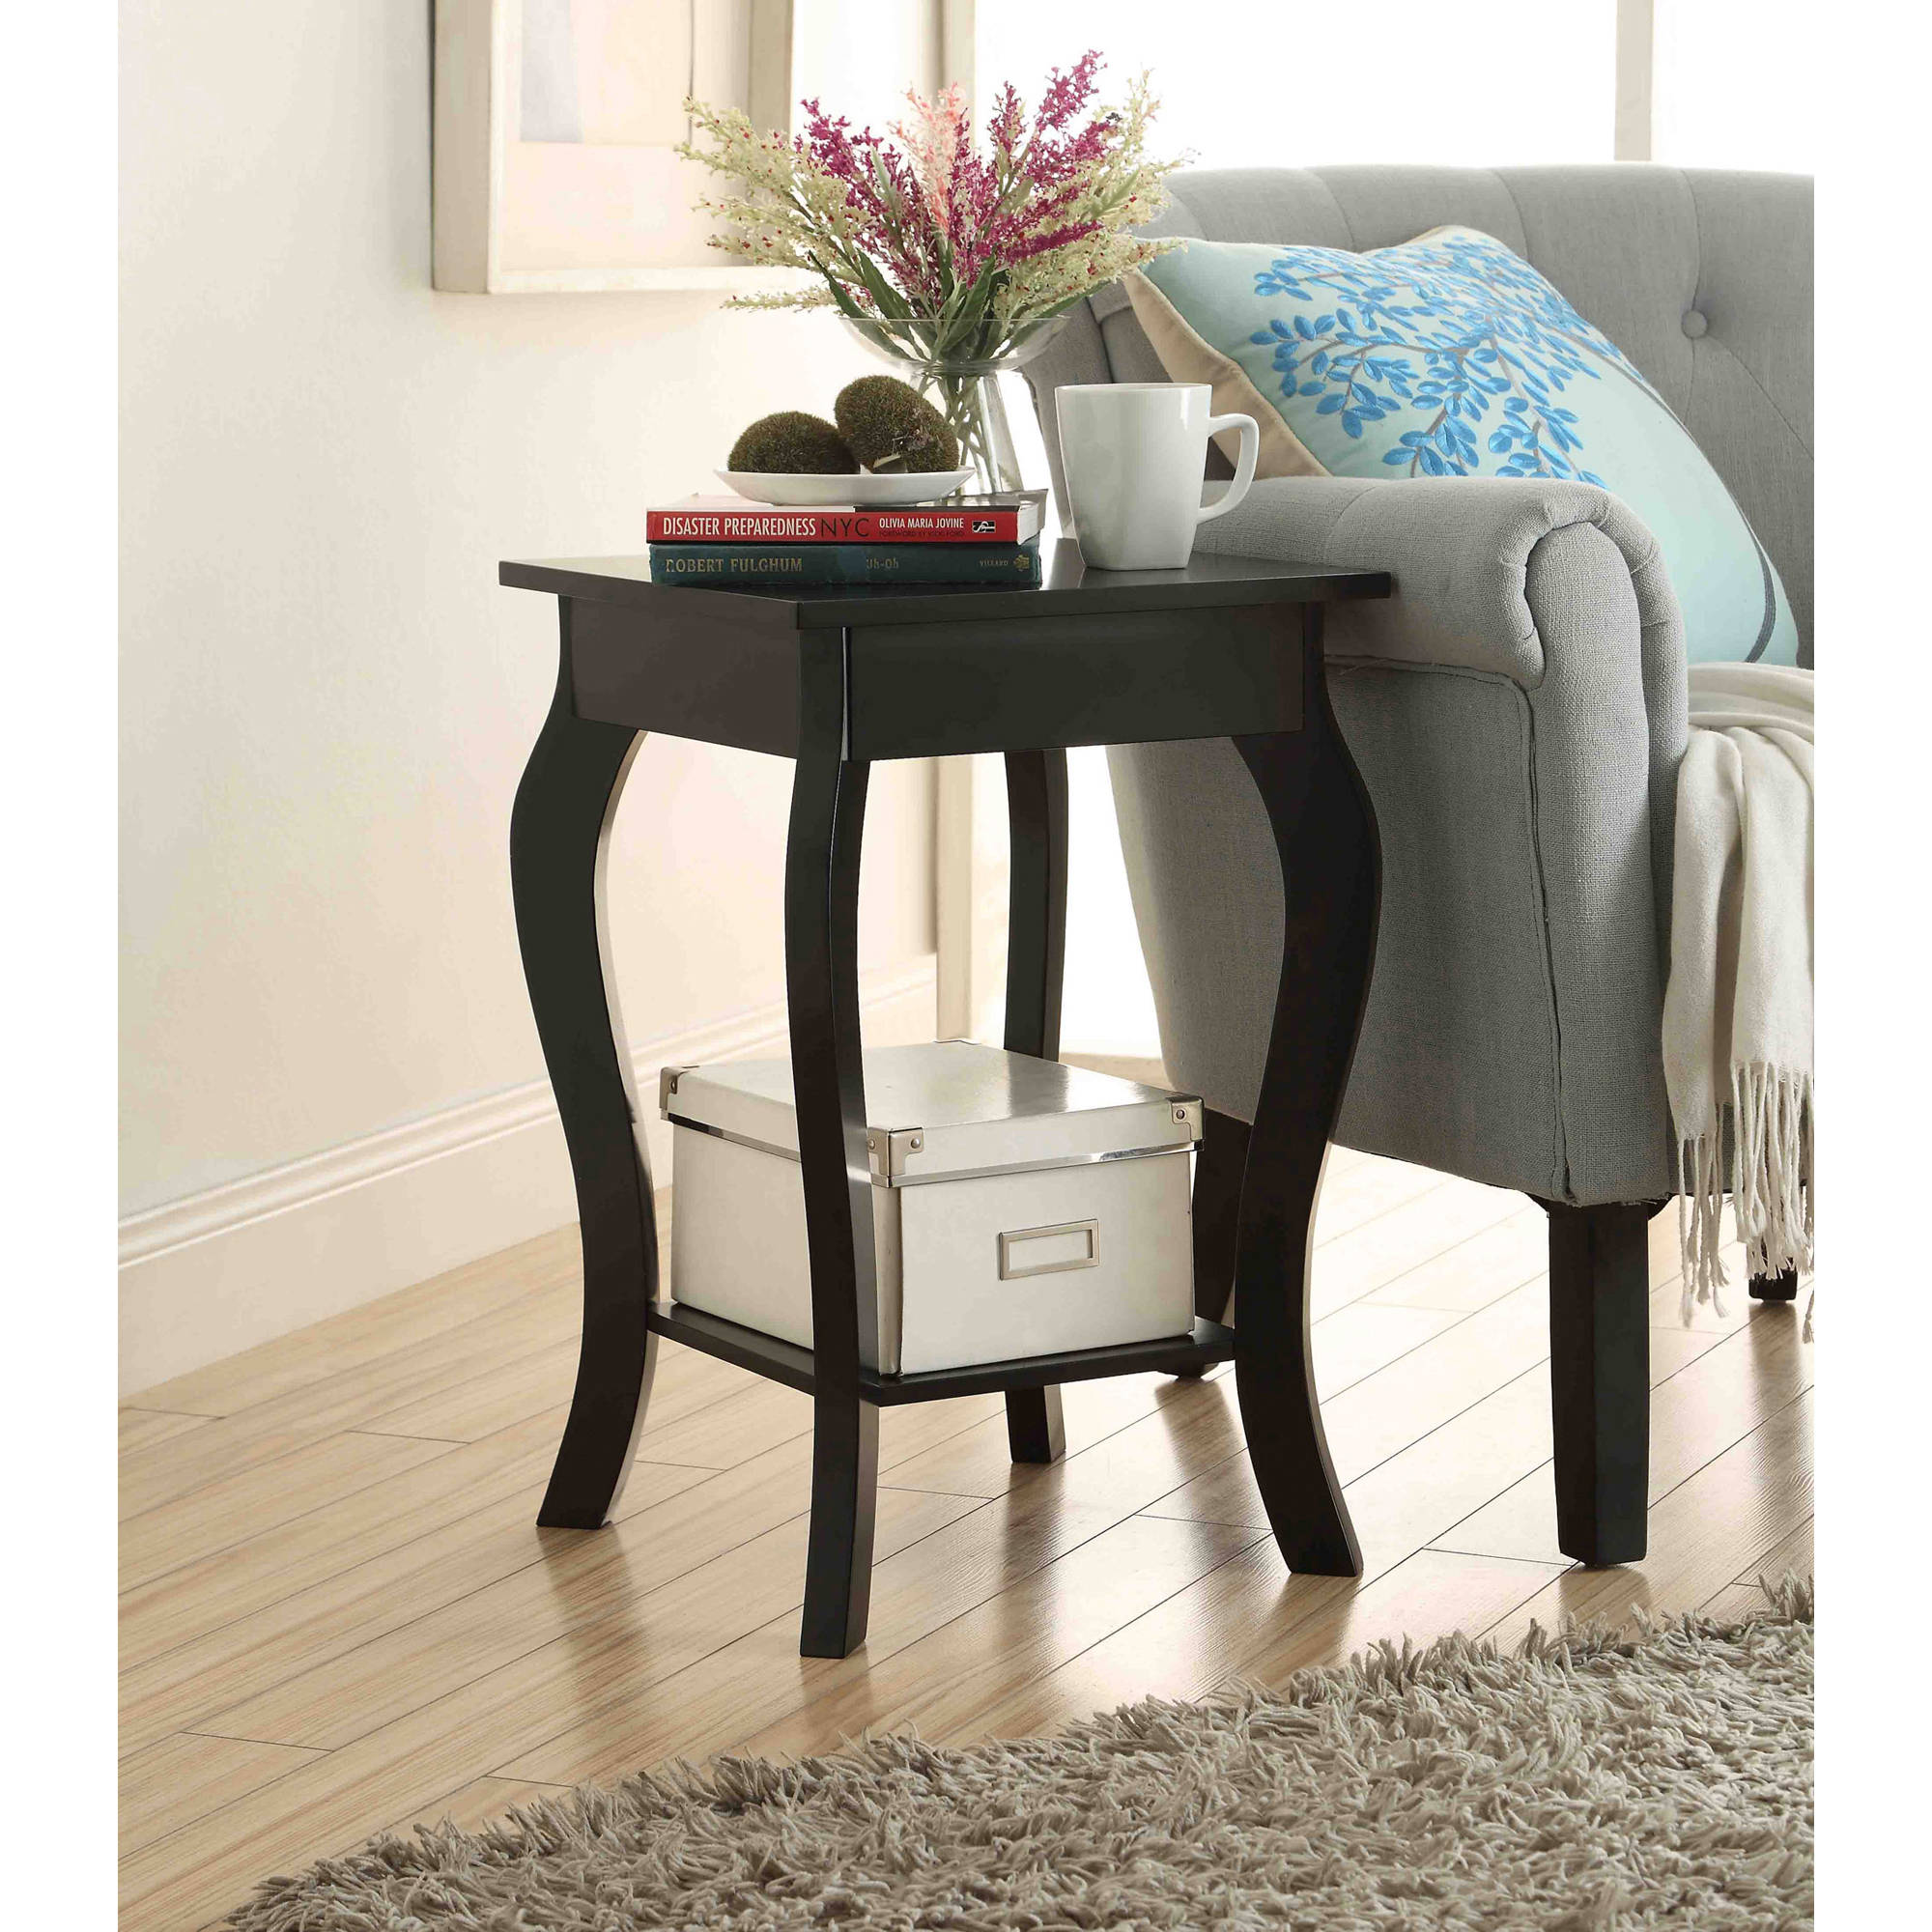 delectable target accent end tables white for bench and storage ott kijiji furniture decorative cabinet outdoor living gold antique tall threshold glass round modern room foremost